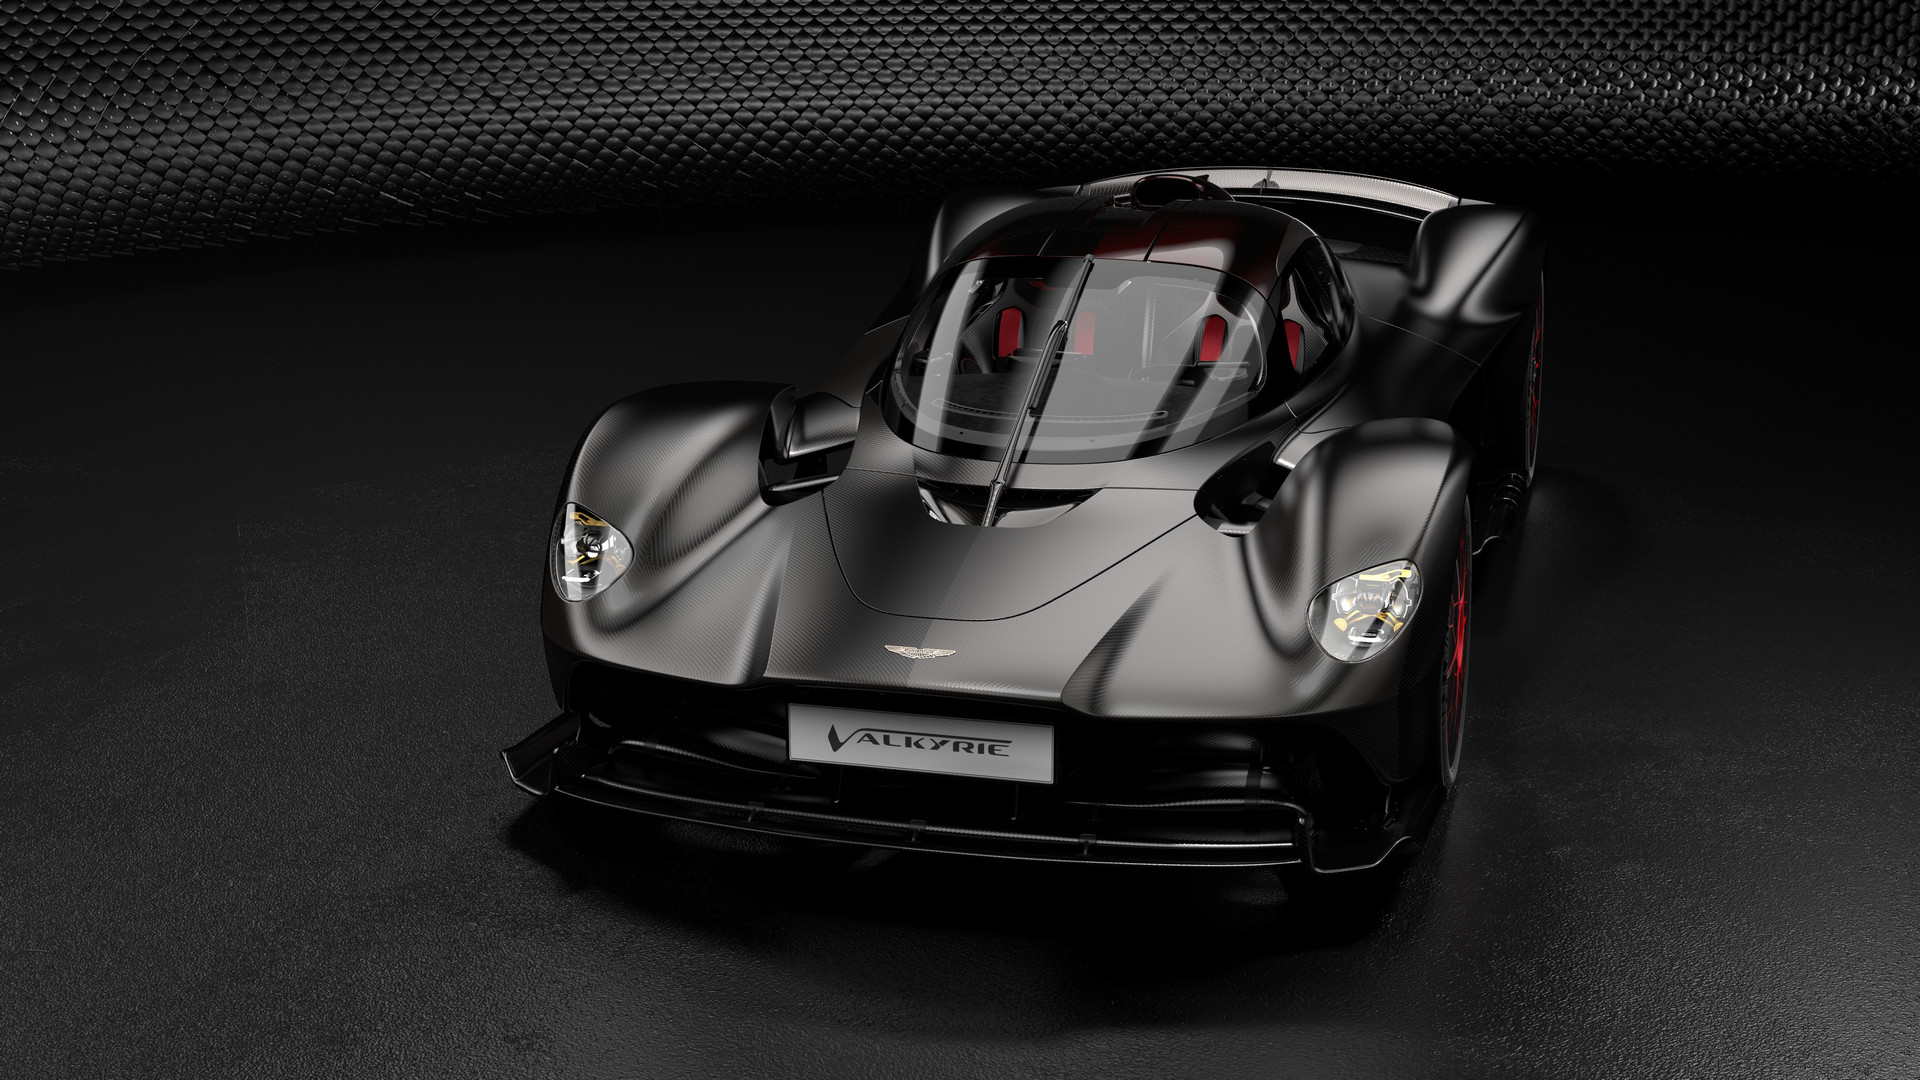 aston martin valkyrie to get optional amr track performance pack